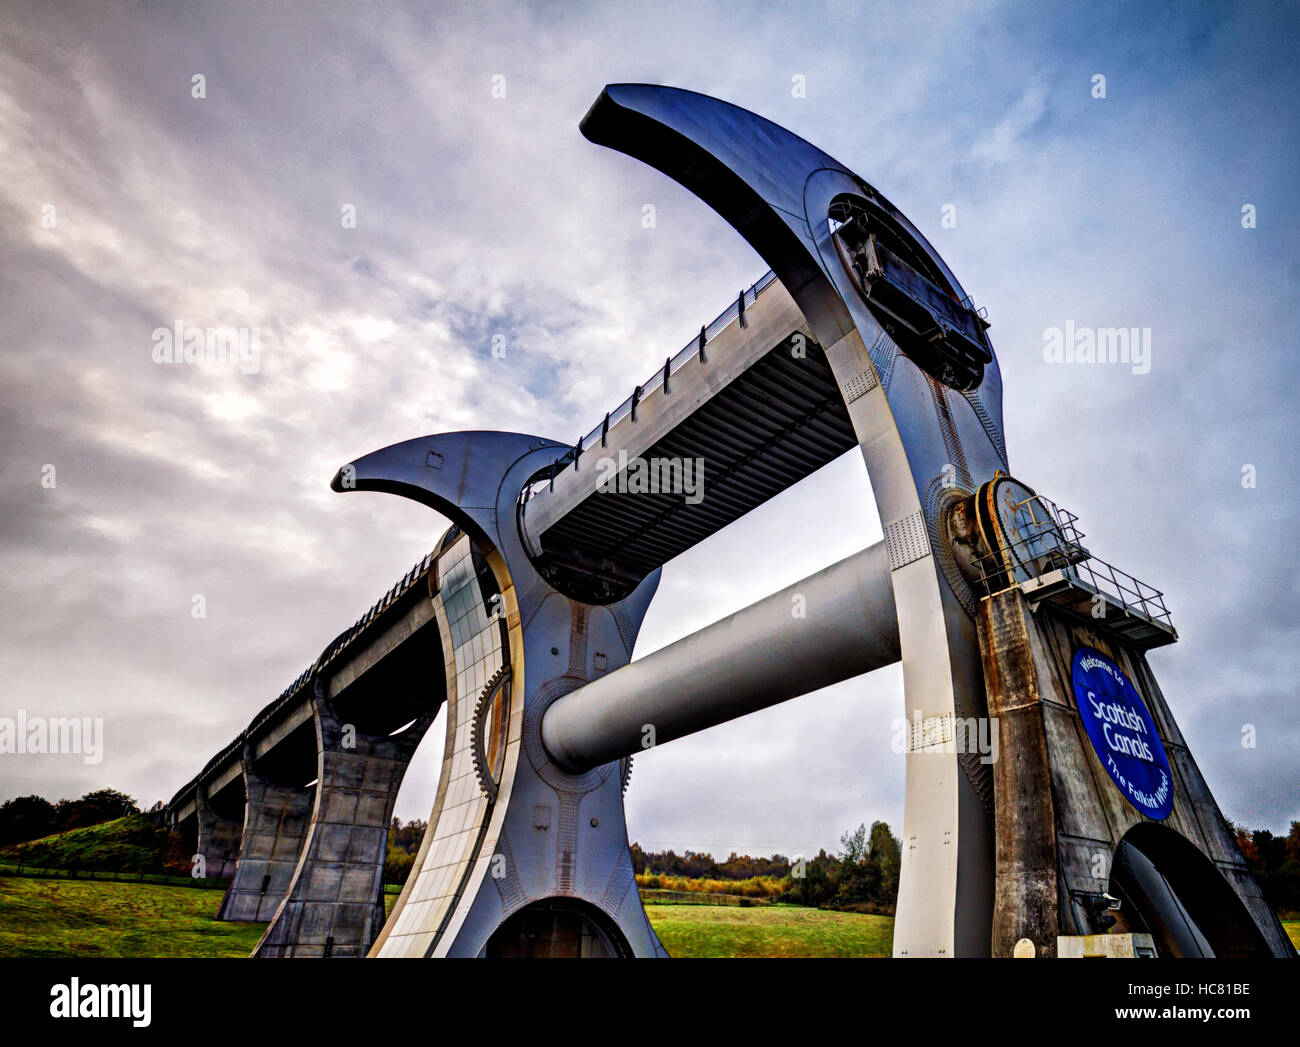 Looking up at the Falkirk Wheel - Stock Image